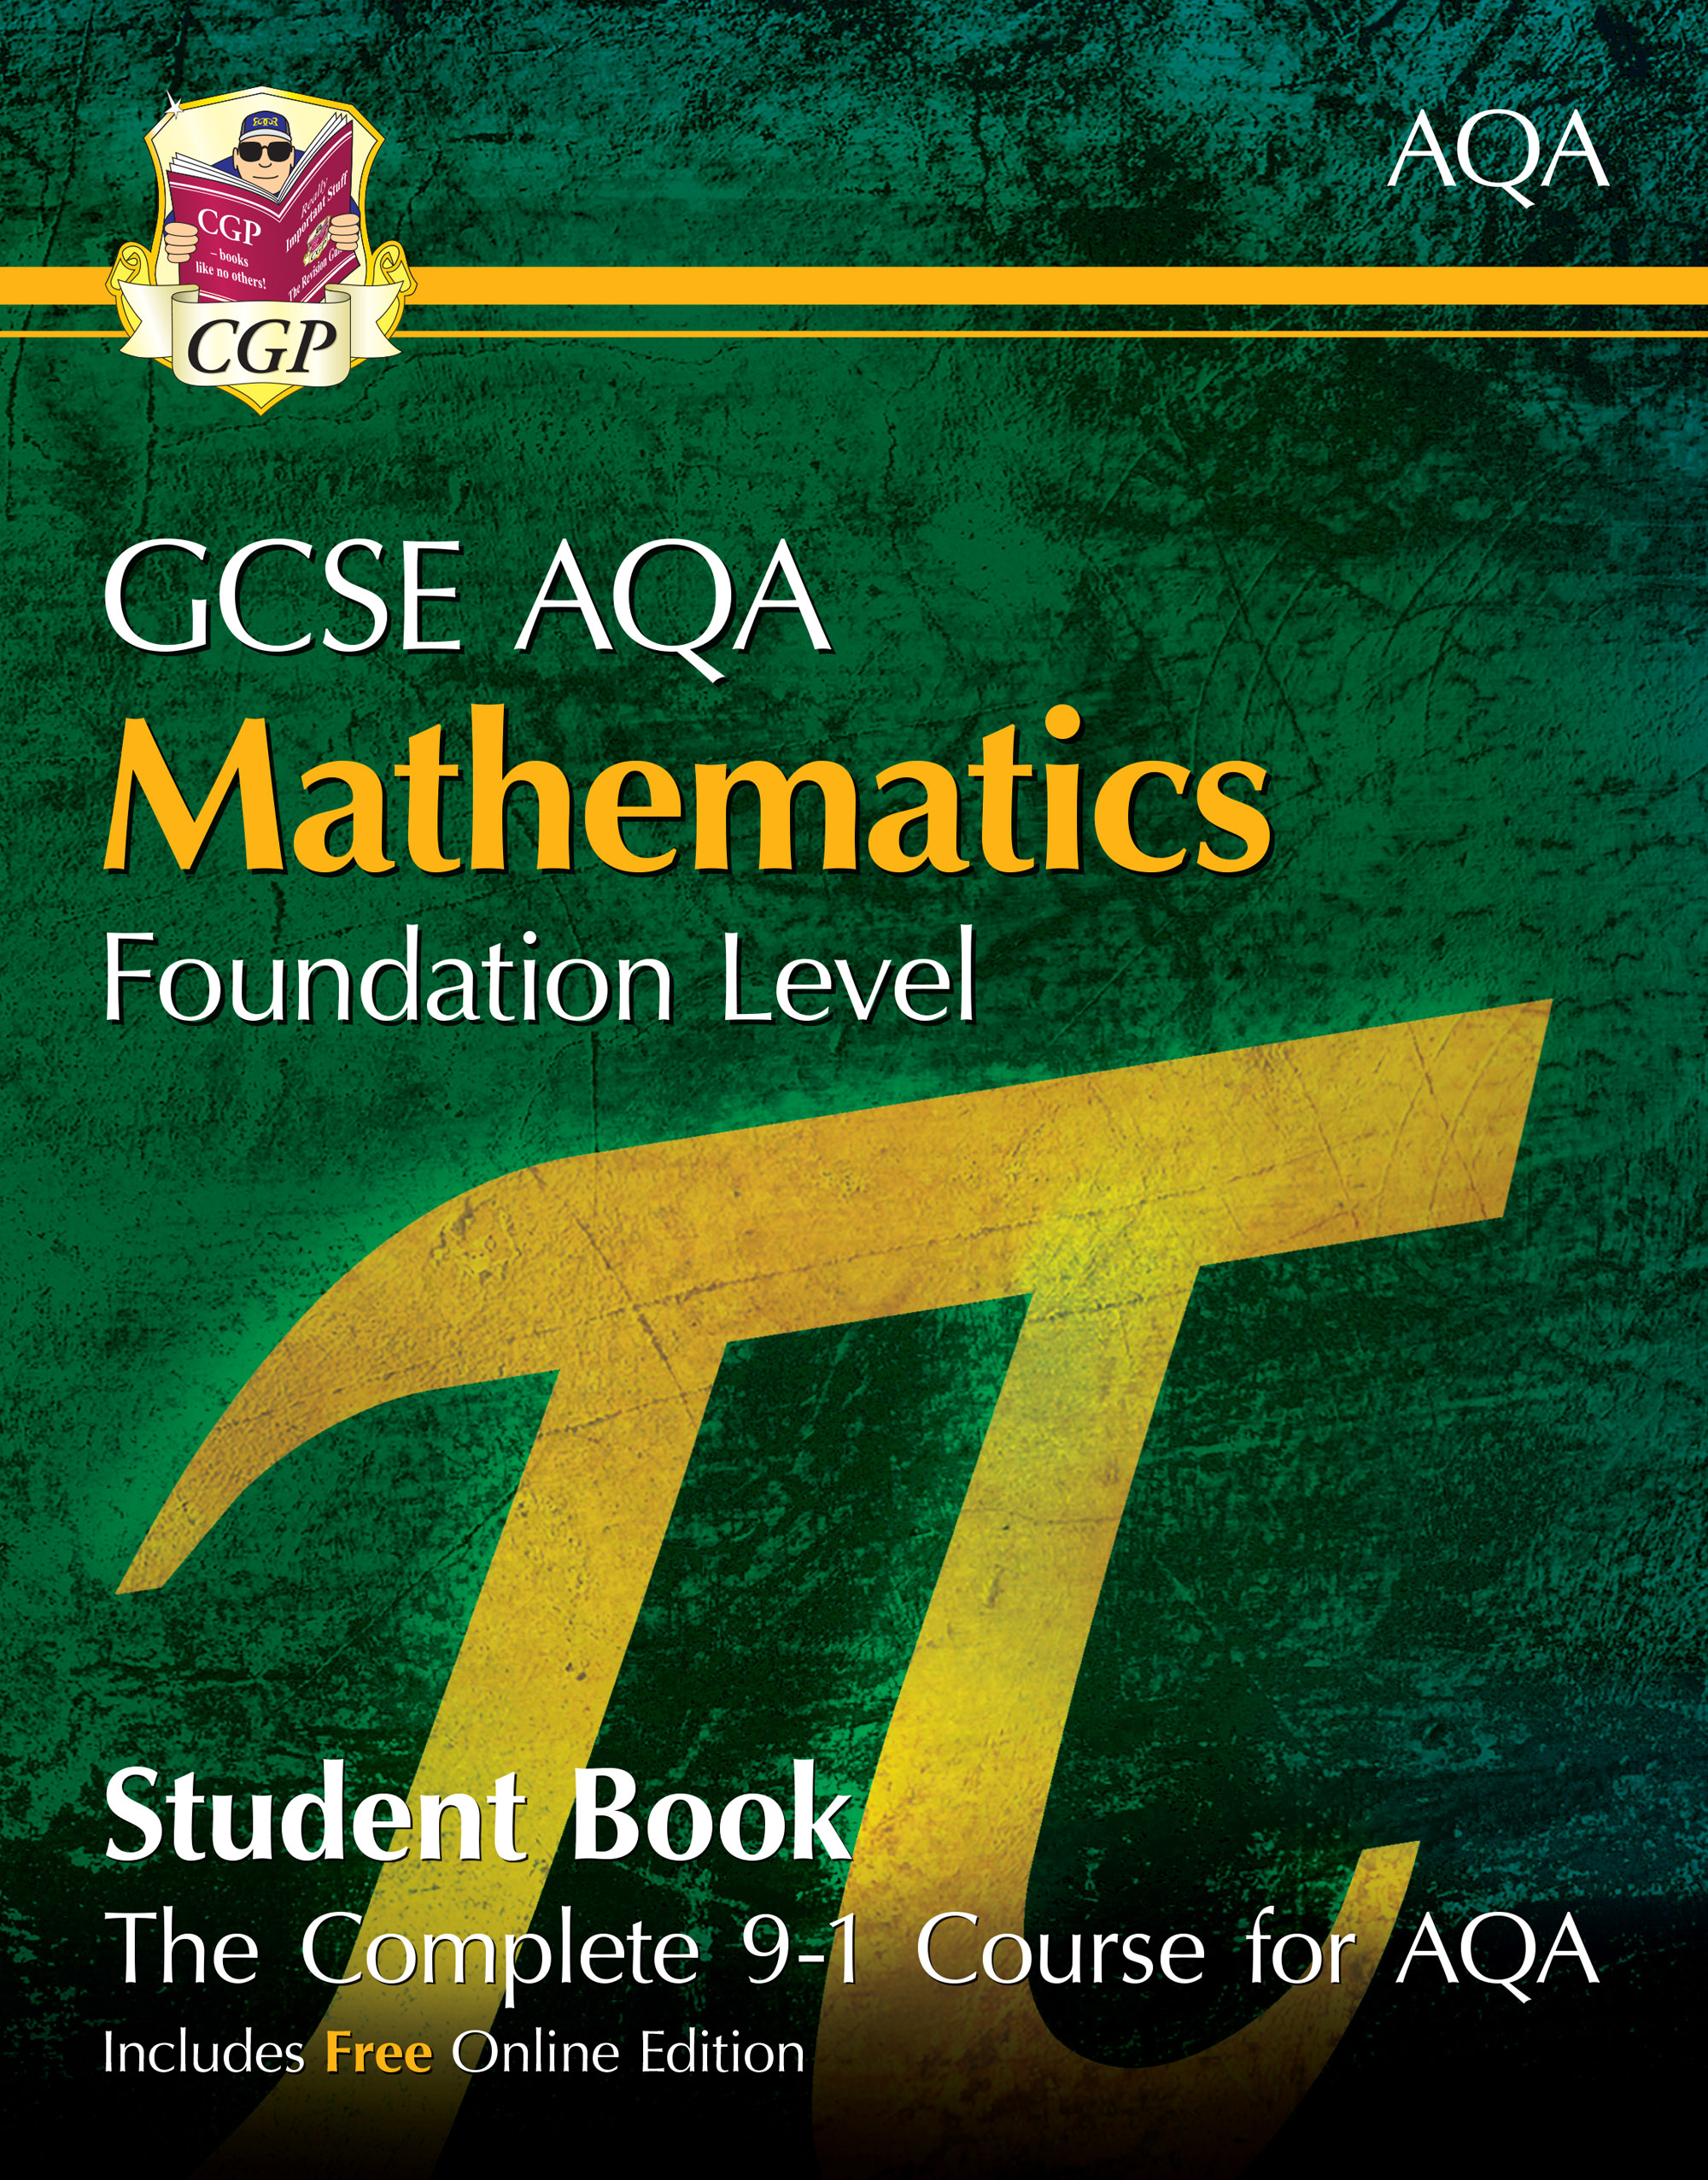 MQFT41 - Grade 9-1 GCSE Maths AQA Student Book - Foundation (with Online Edition)